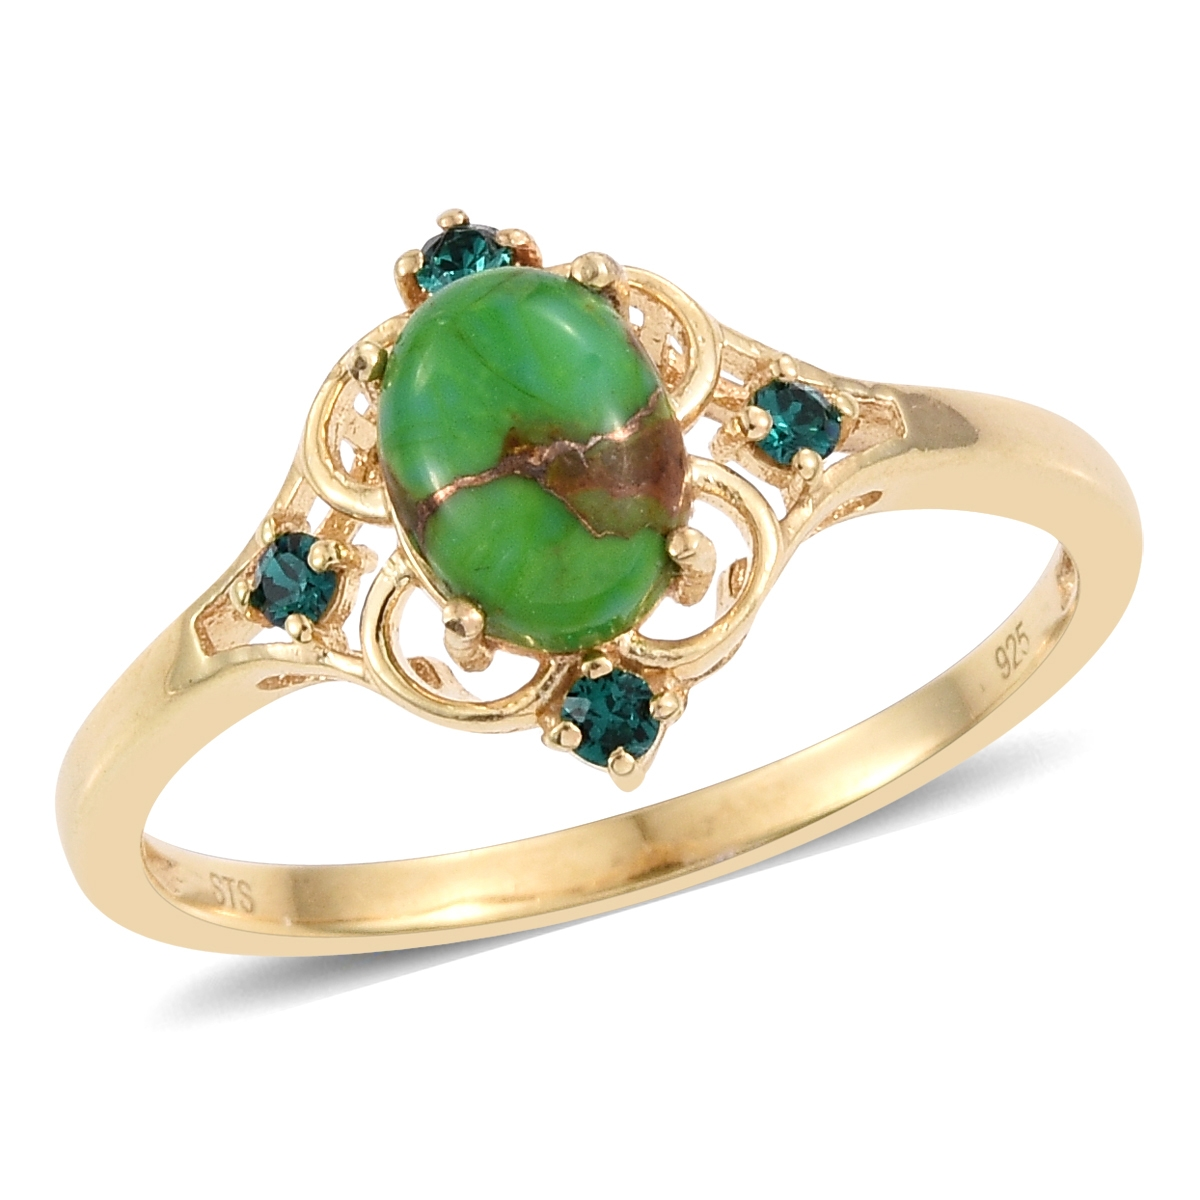 50554d0bb Mojave Green Turquoise 14K YG Over Sterling Silver Ring (Size 7.0) Made  with SWAROVSKI Emerald Crystal TGW 1.35 cts.